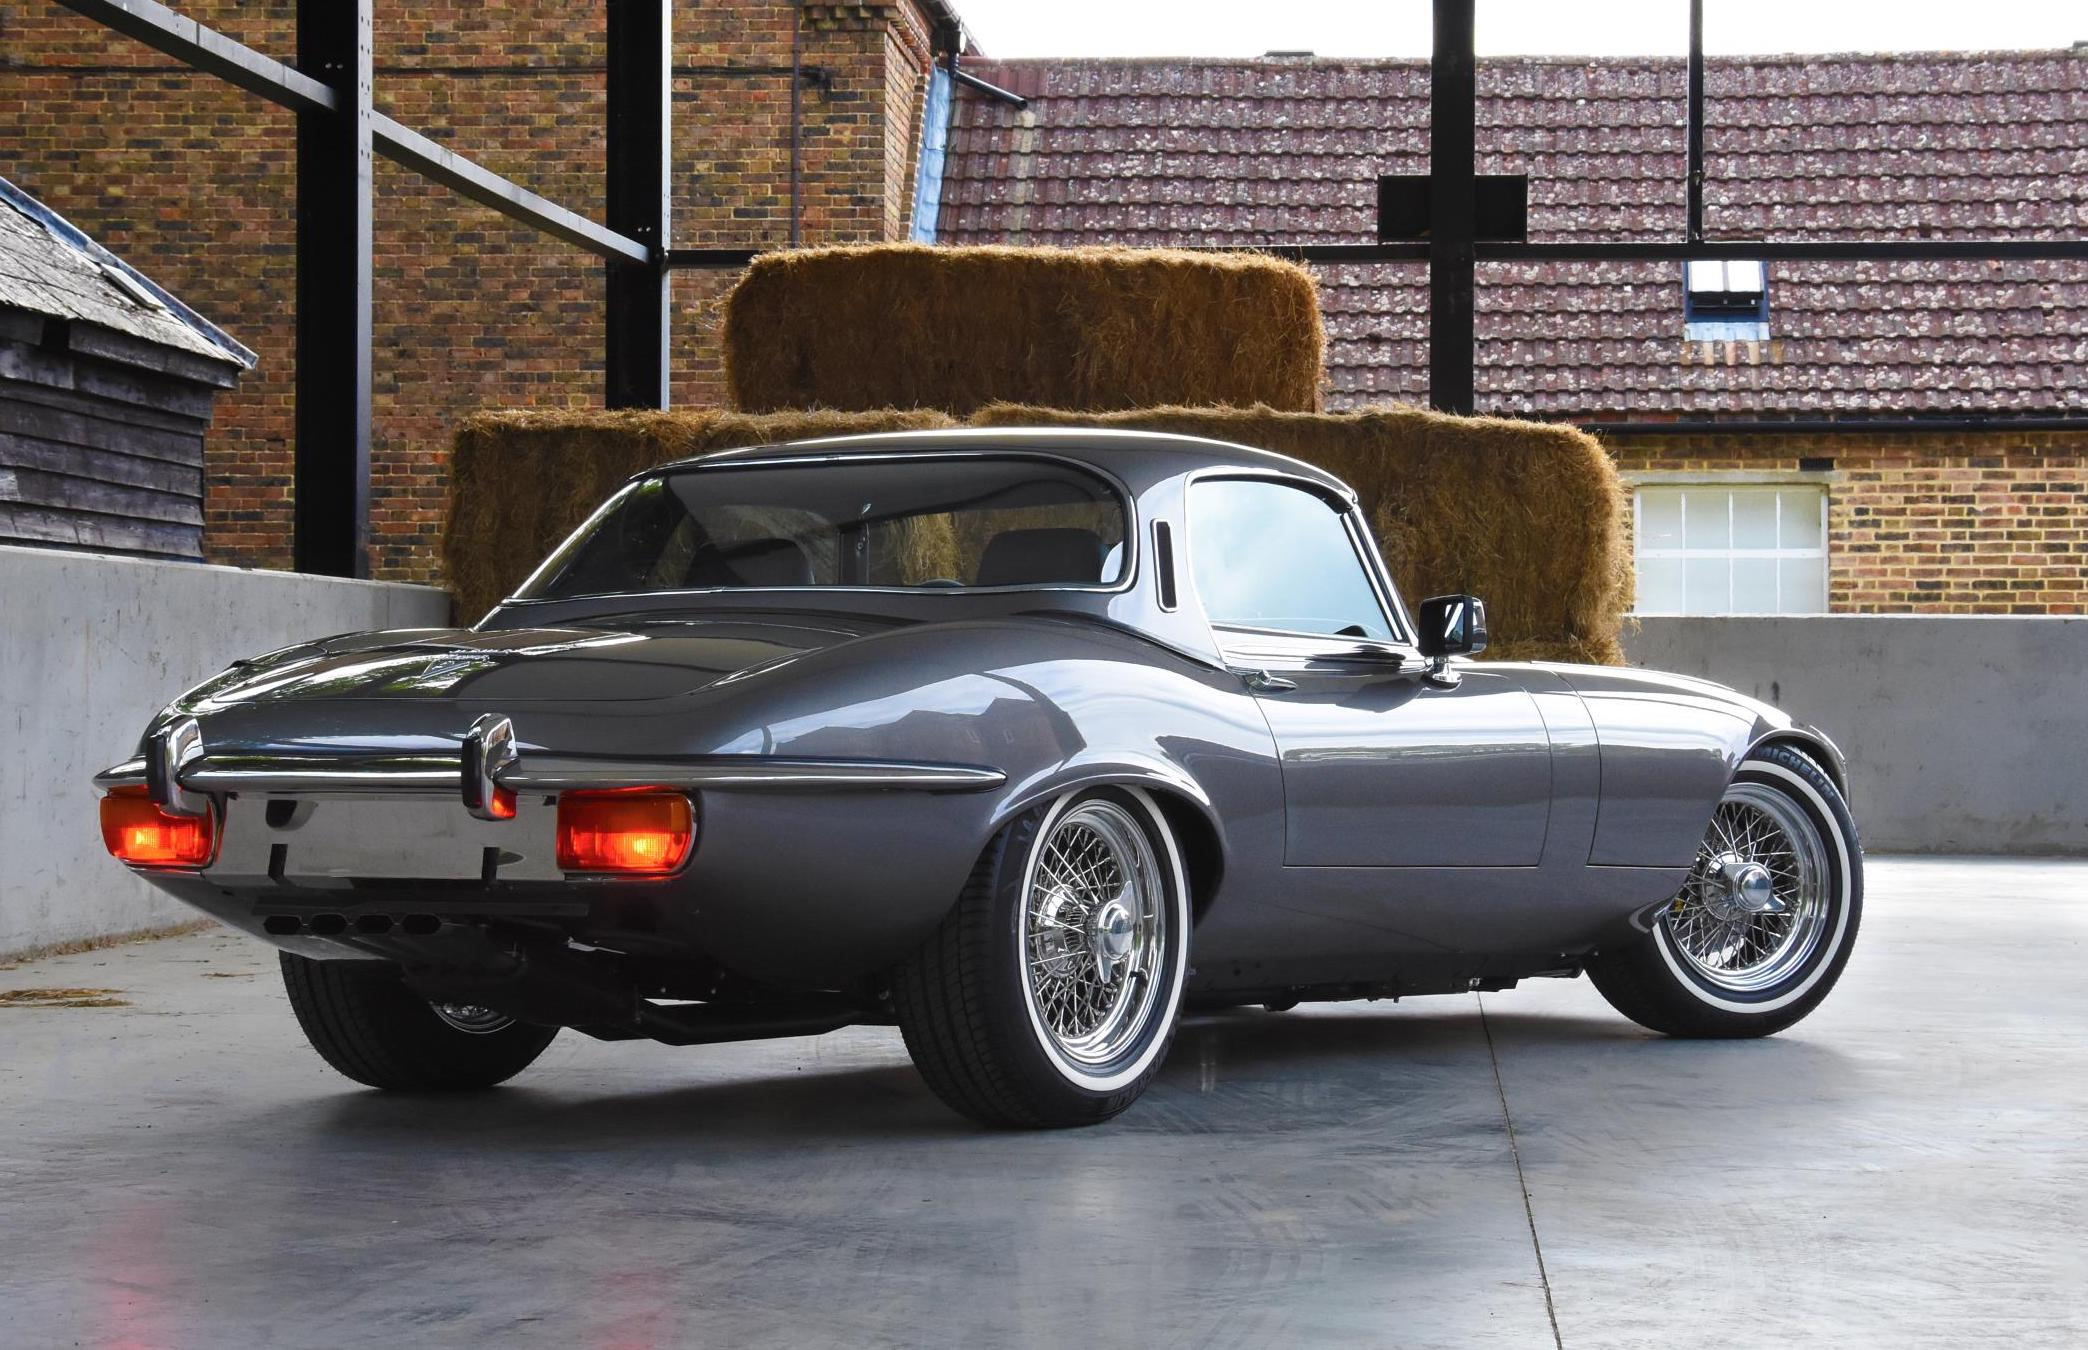 1974 Jaguar E-Type restored beautifully with 6.1L V12 ...